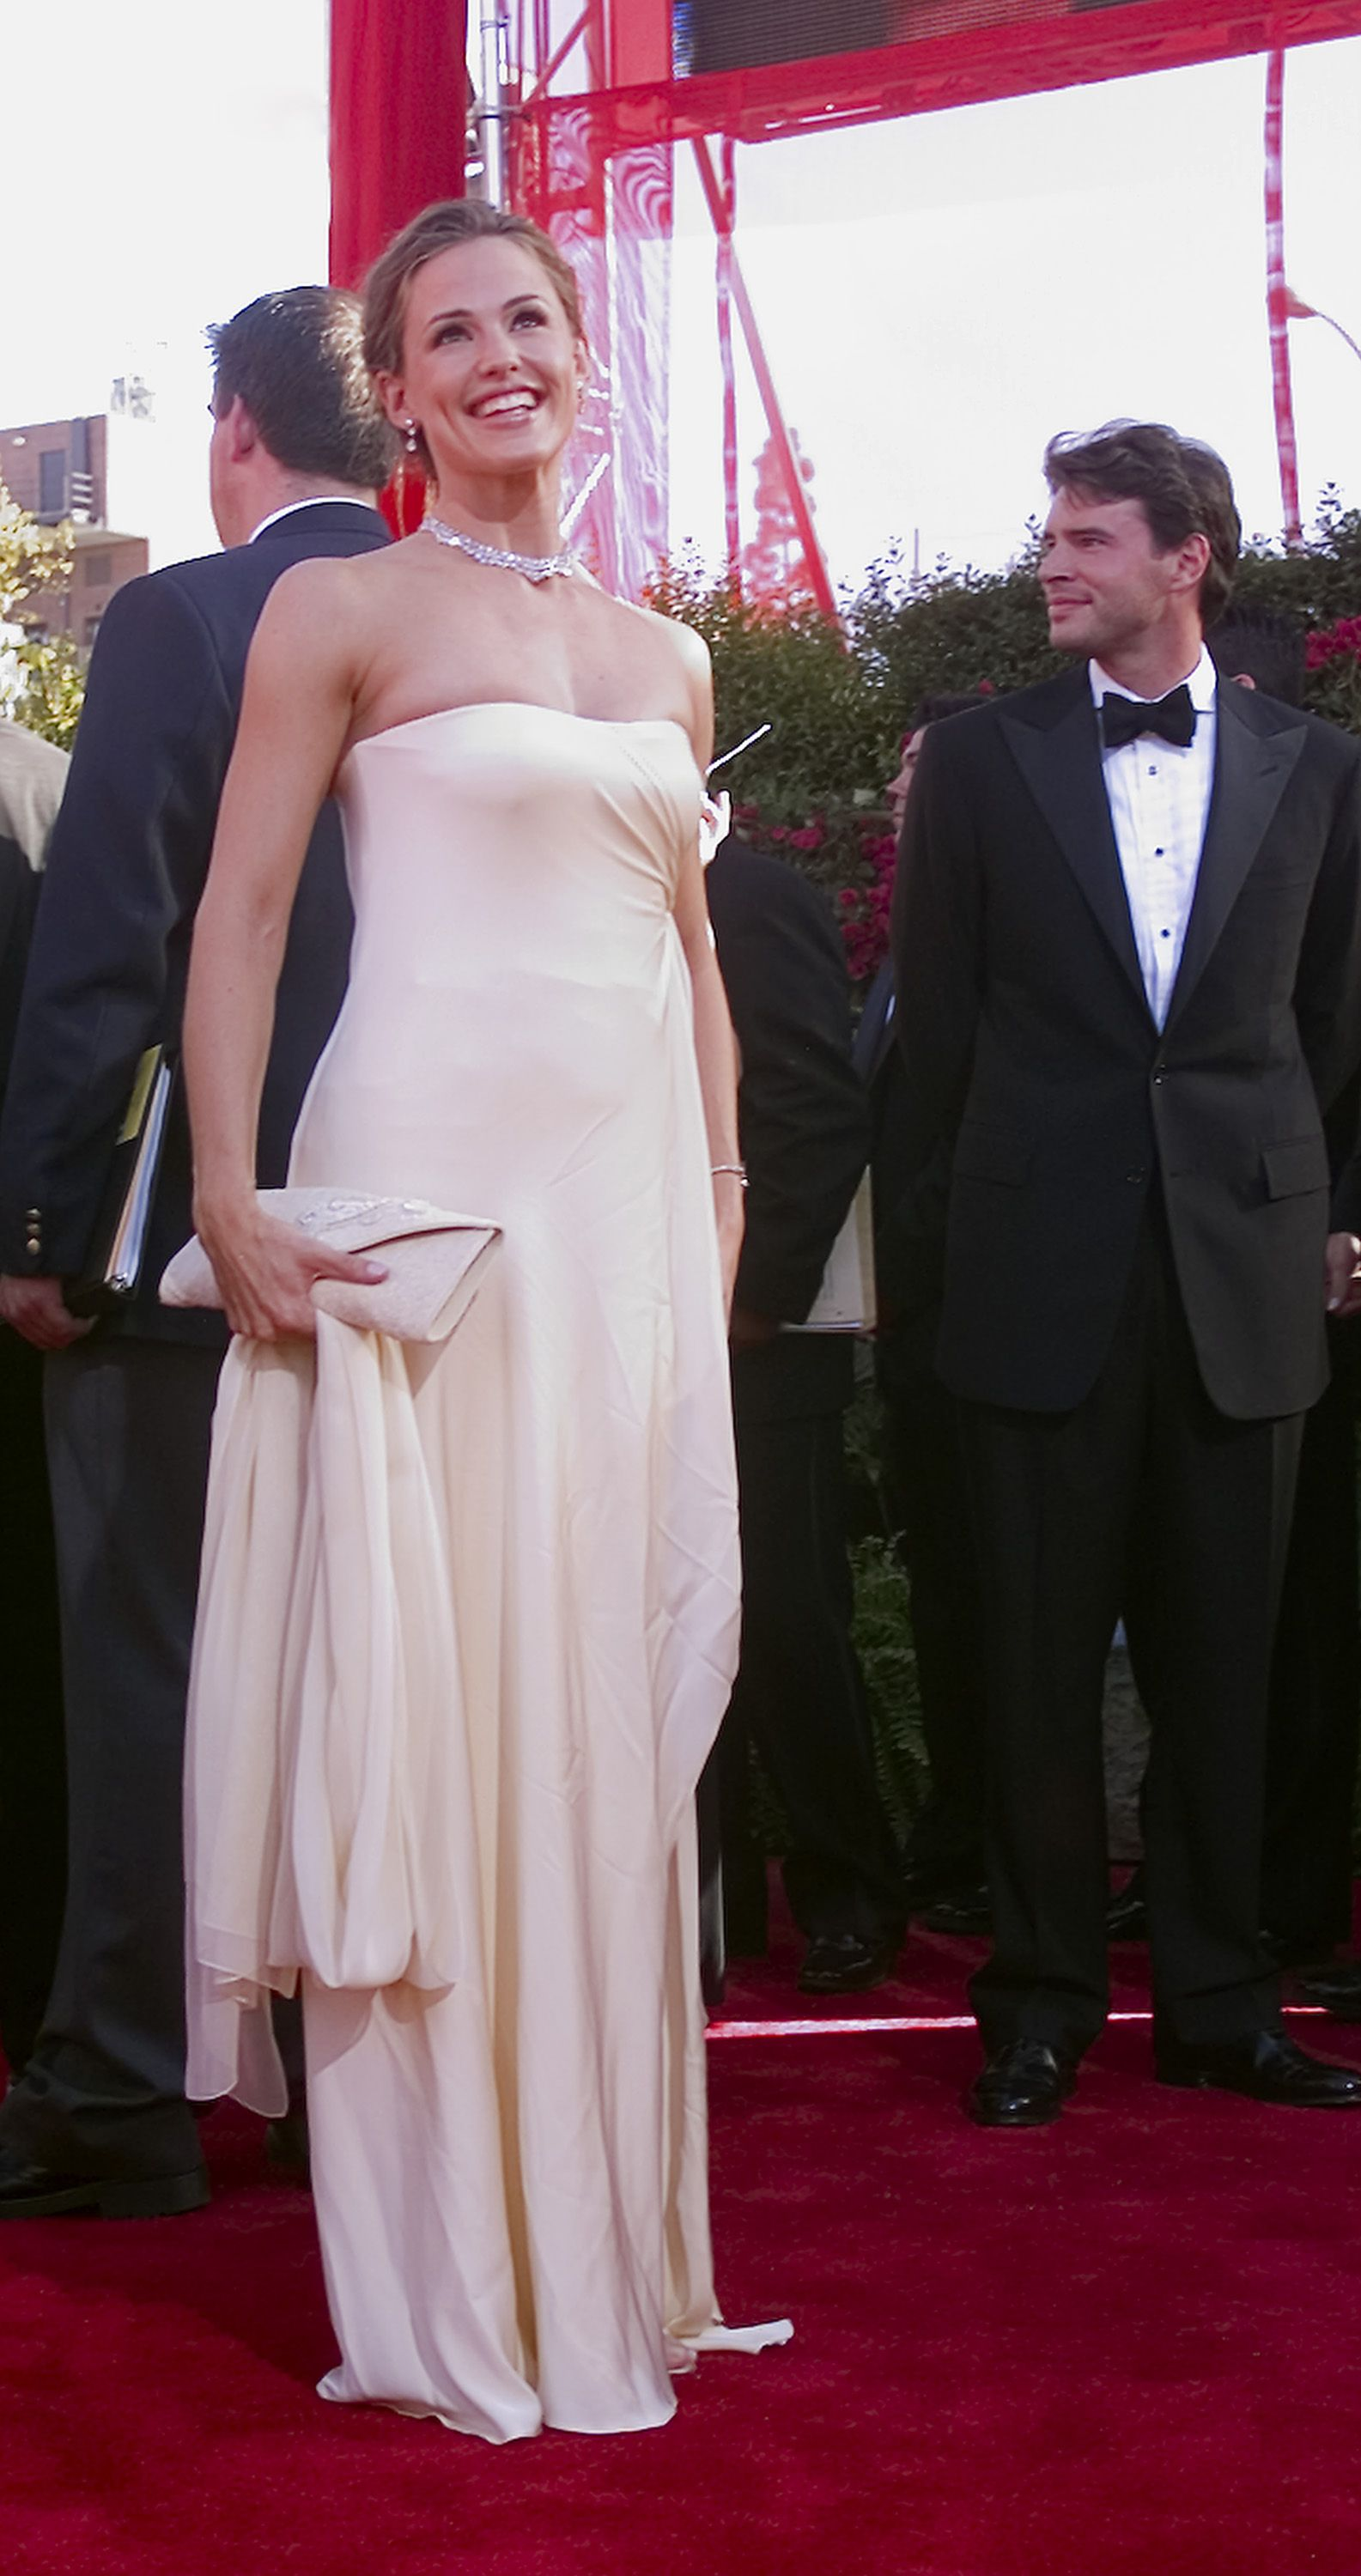 September 22, 2002 In a simple cream-colored strapless gown at the 54th annual Emmy awards.